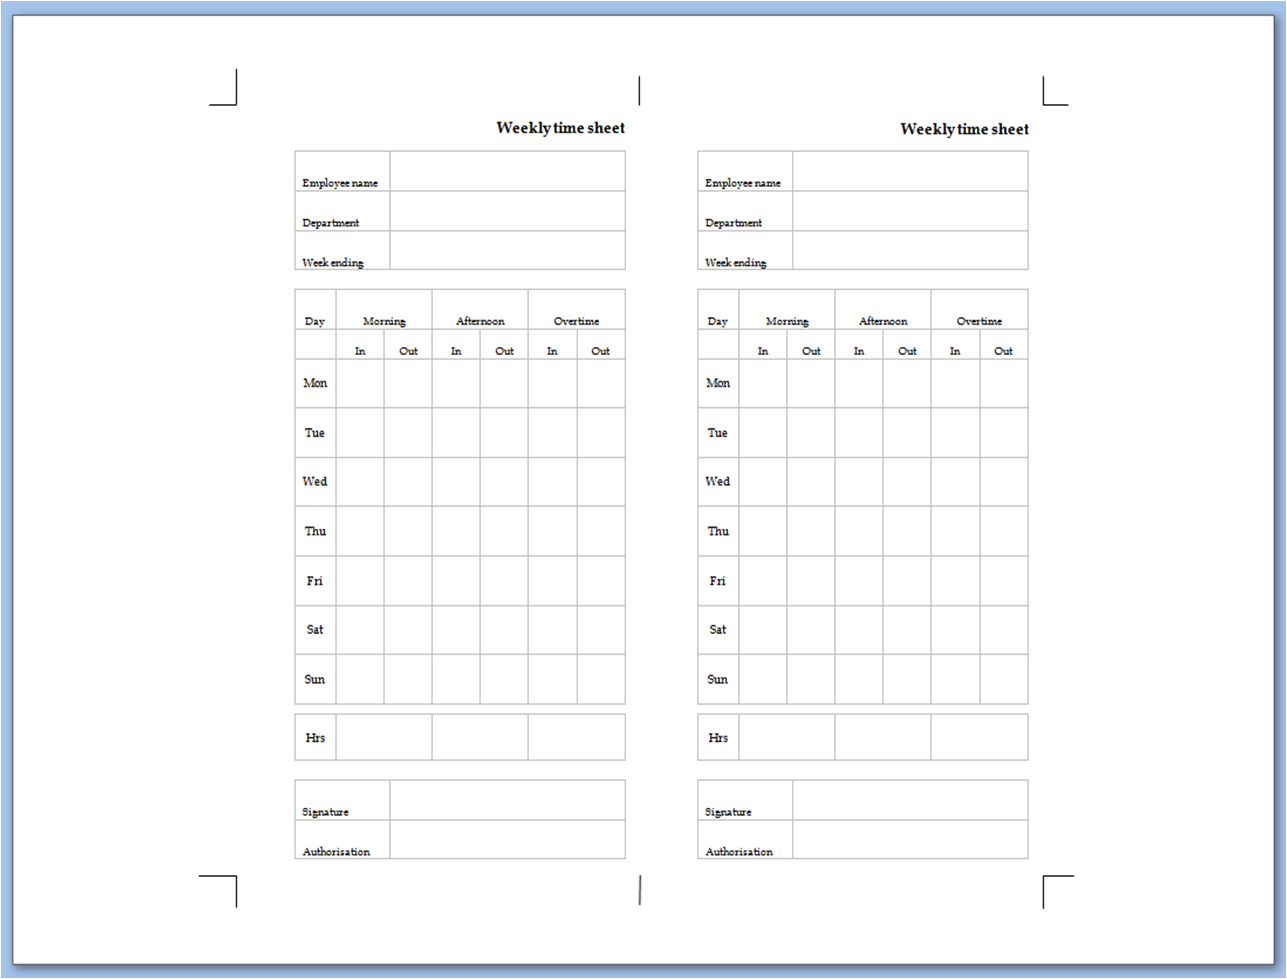 My Life All in One Place: Weekly time sheet to print for ...